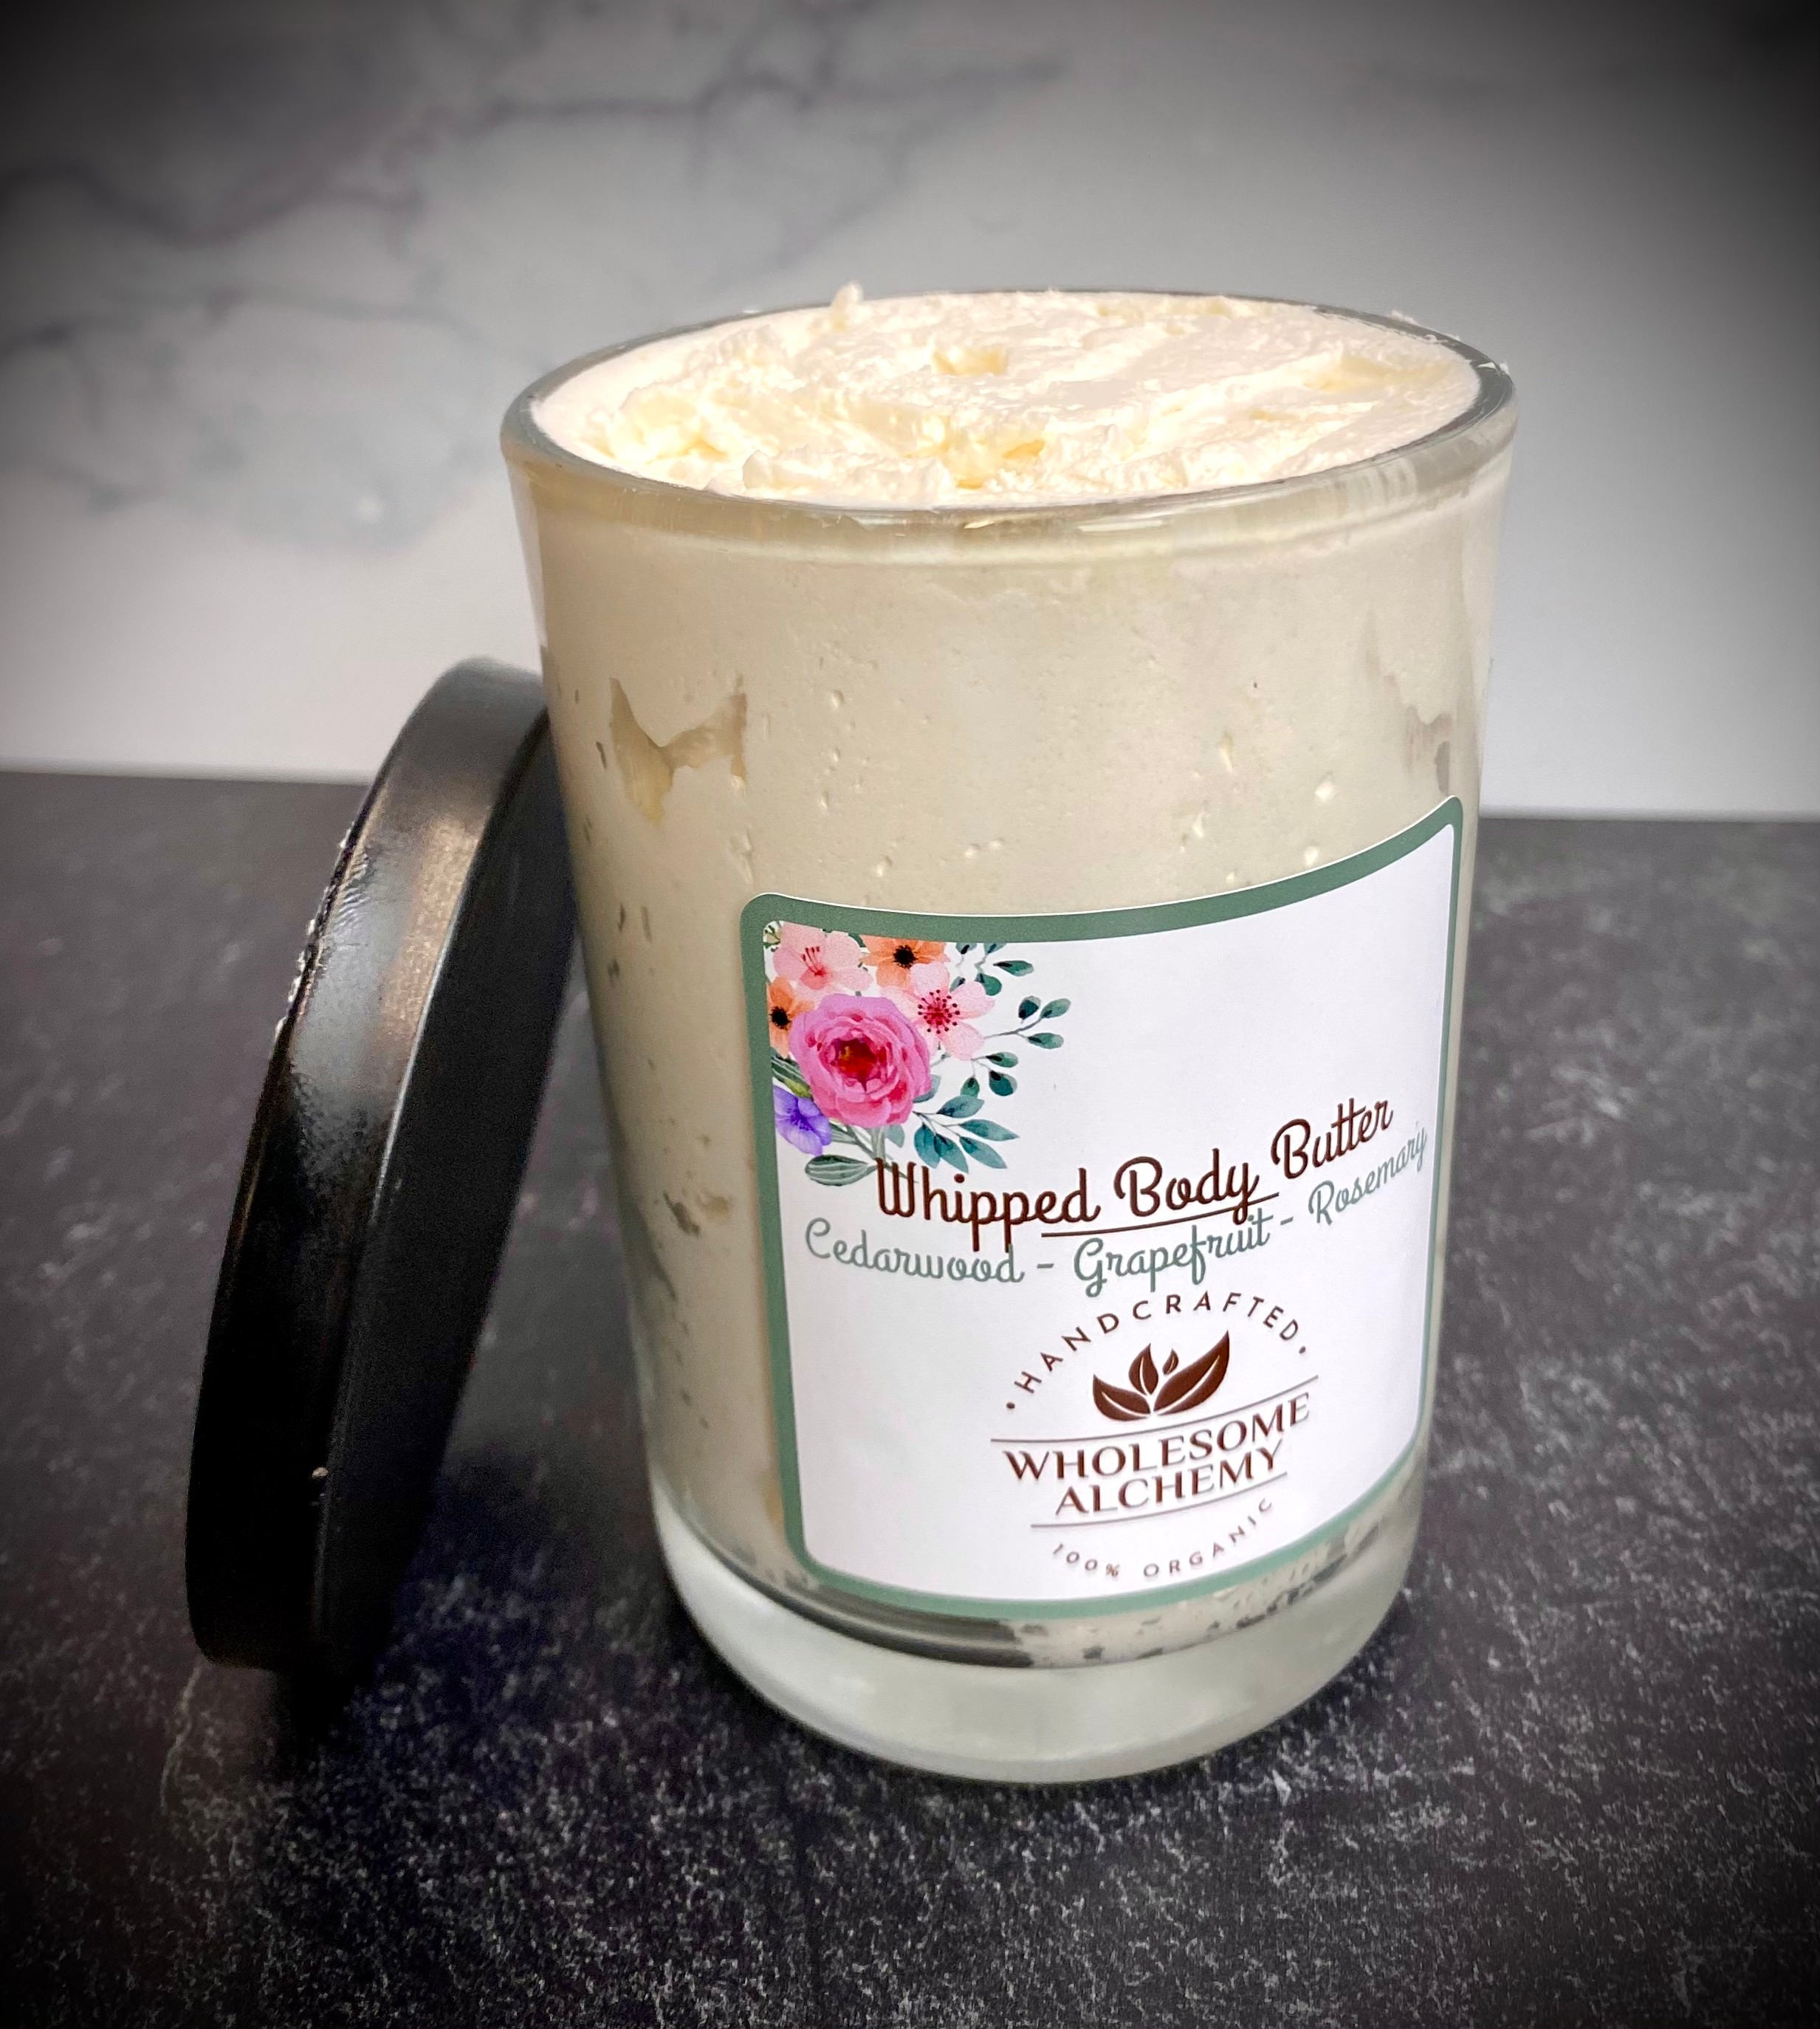 Organic Vegan Whipped Body Butter (Cedarwood, Grapefruit, Rosemary Essential Oils)